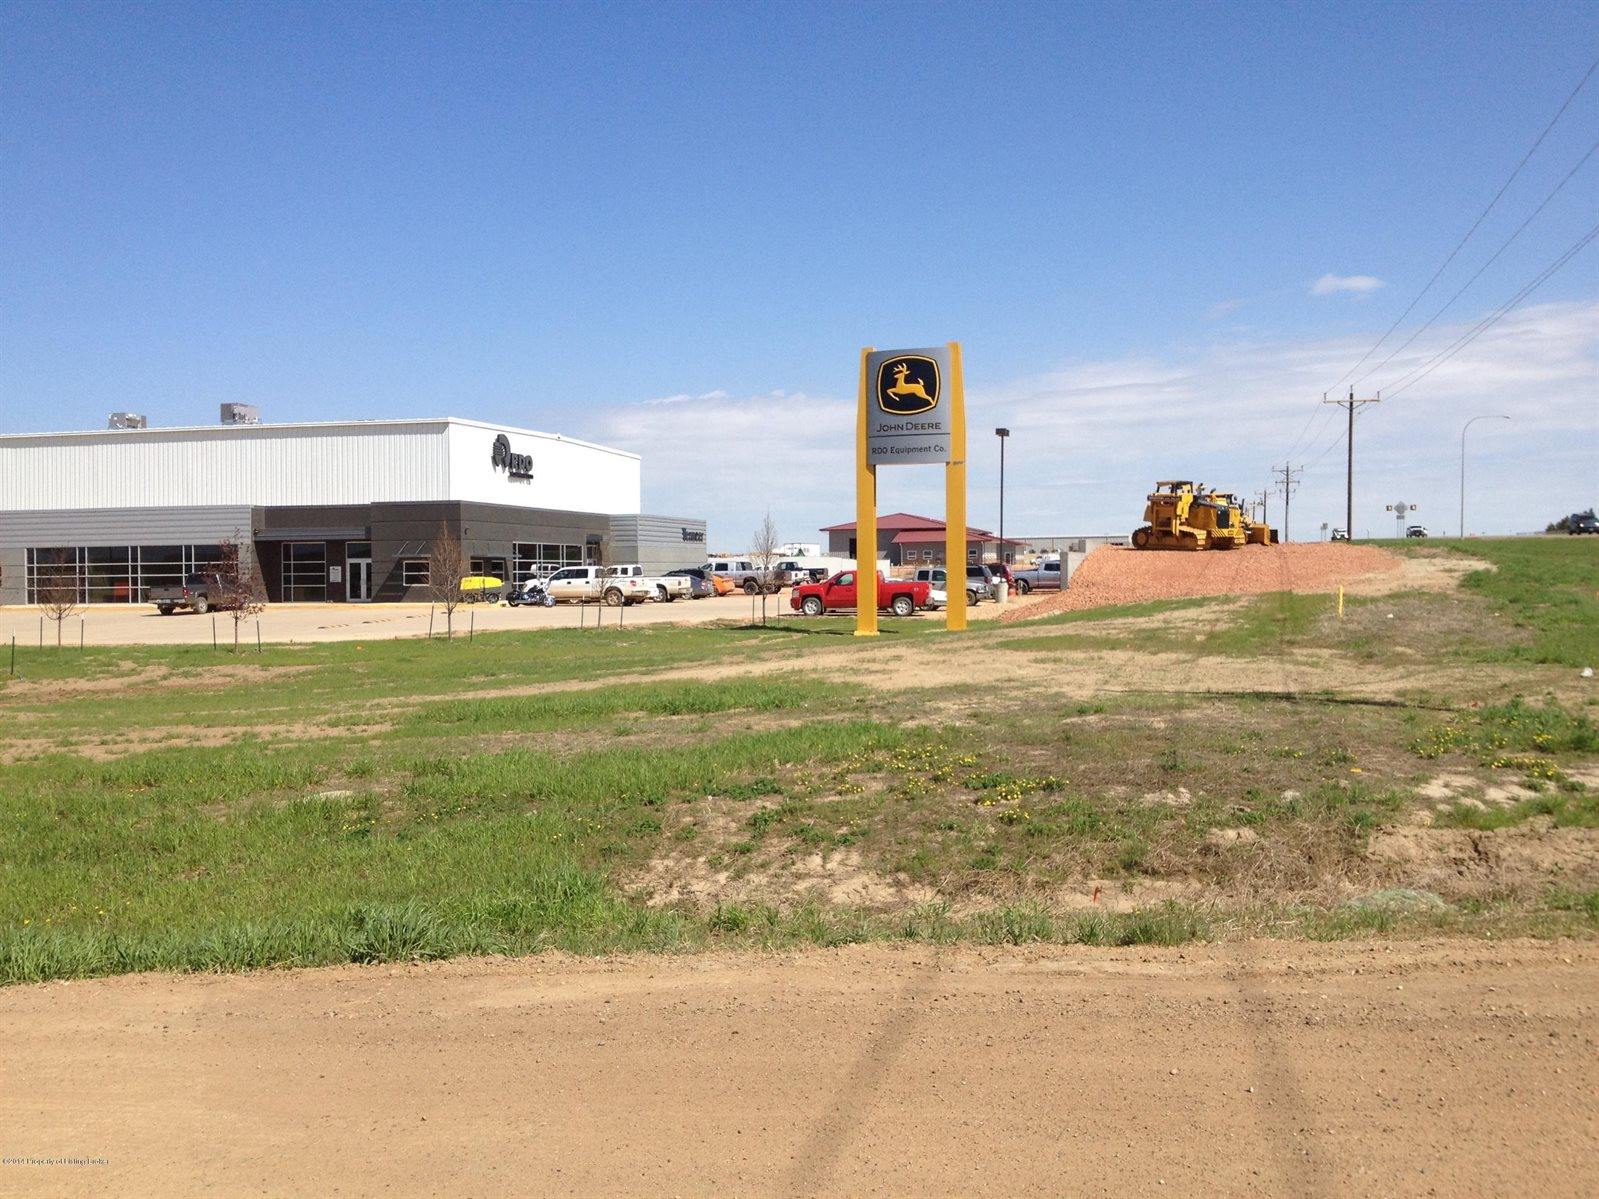 33rd St. SW/ Highway 22, Dickinson, ND 58601